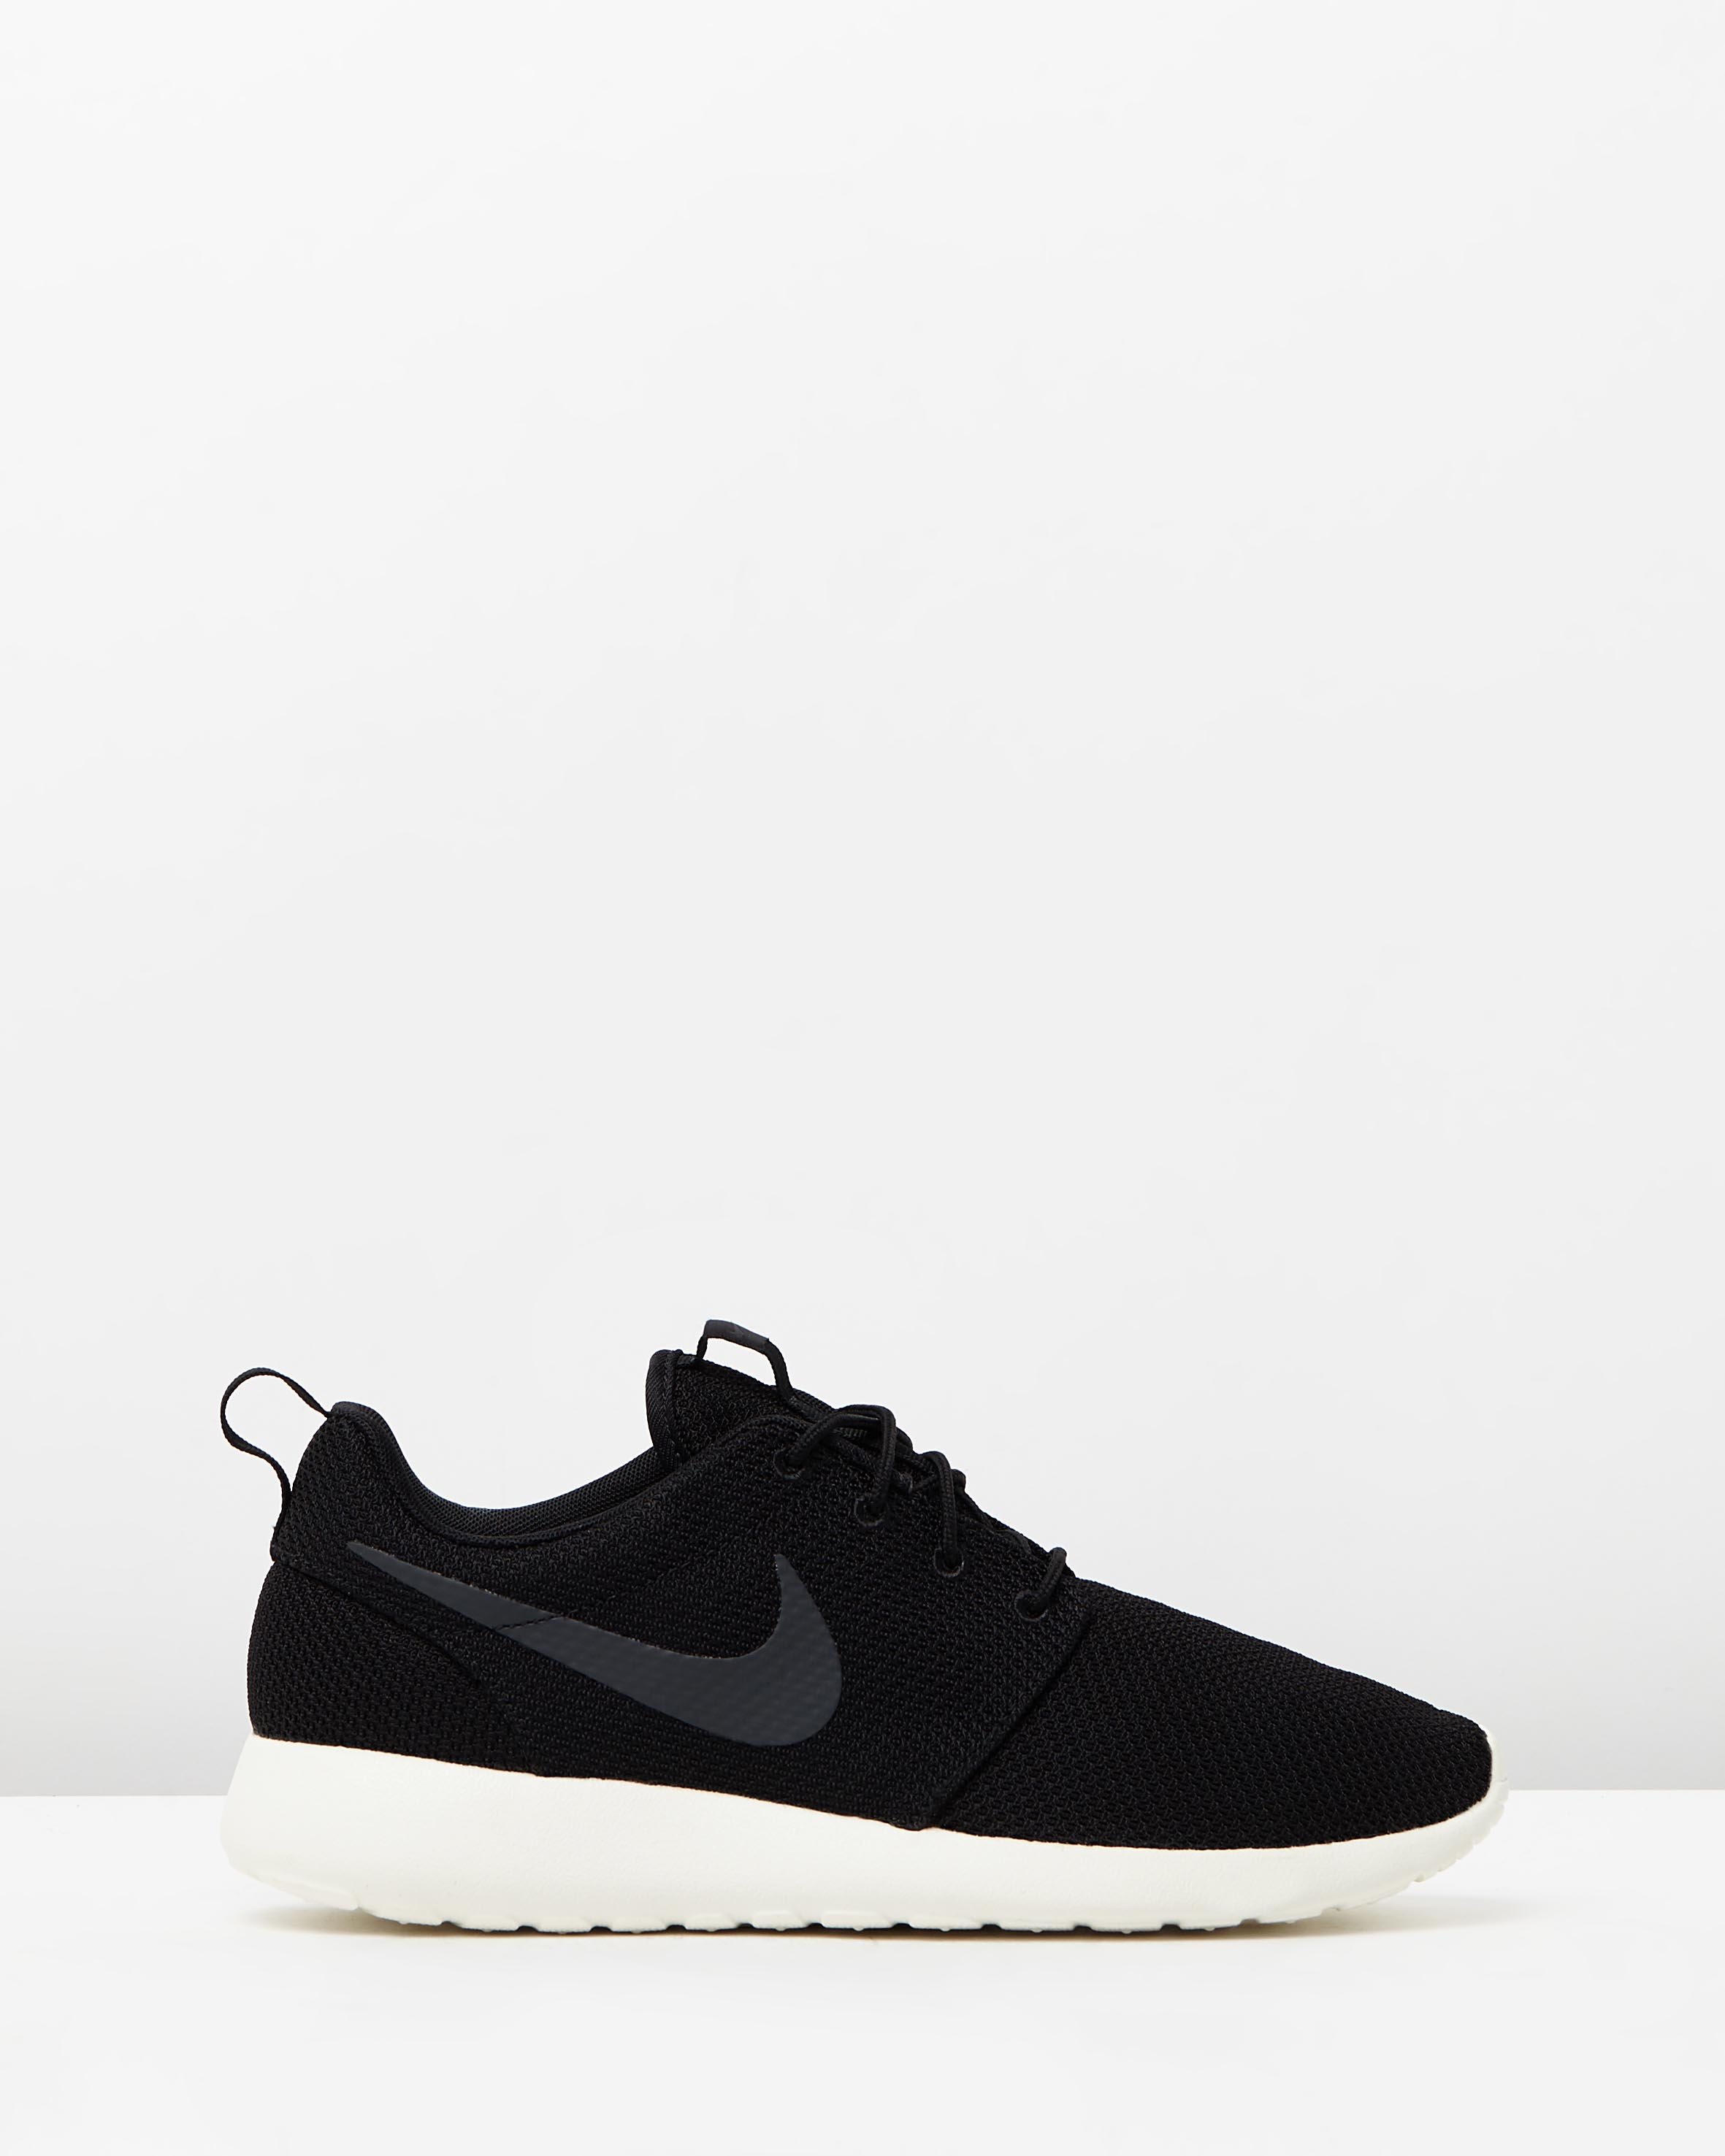 Men's Nike Roshe Run One Black | Sneaker Store - 95Gallery.com